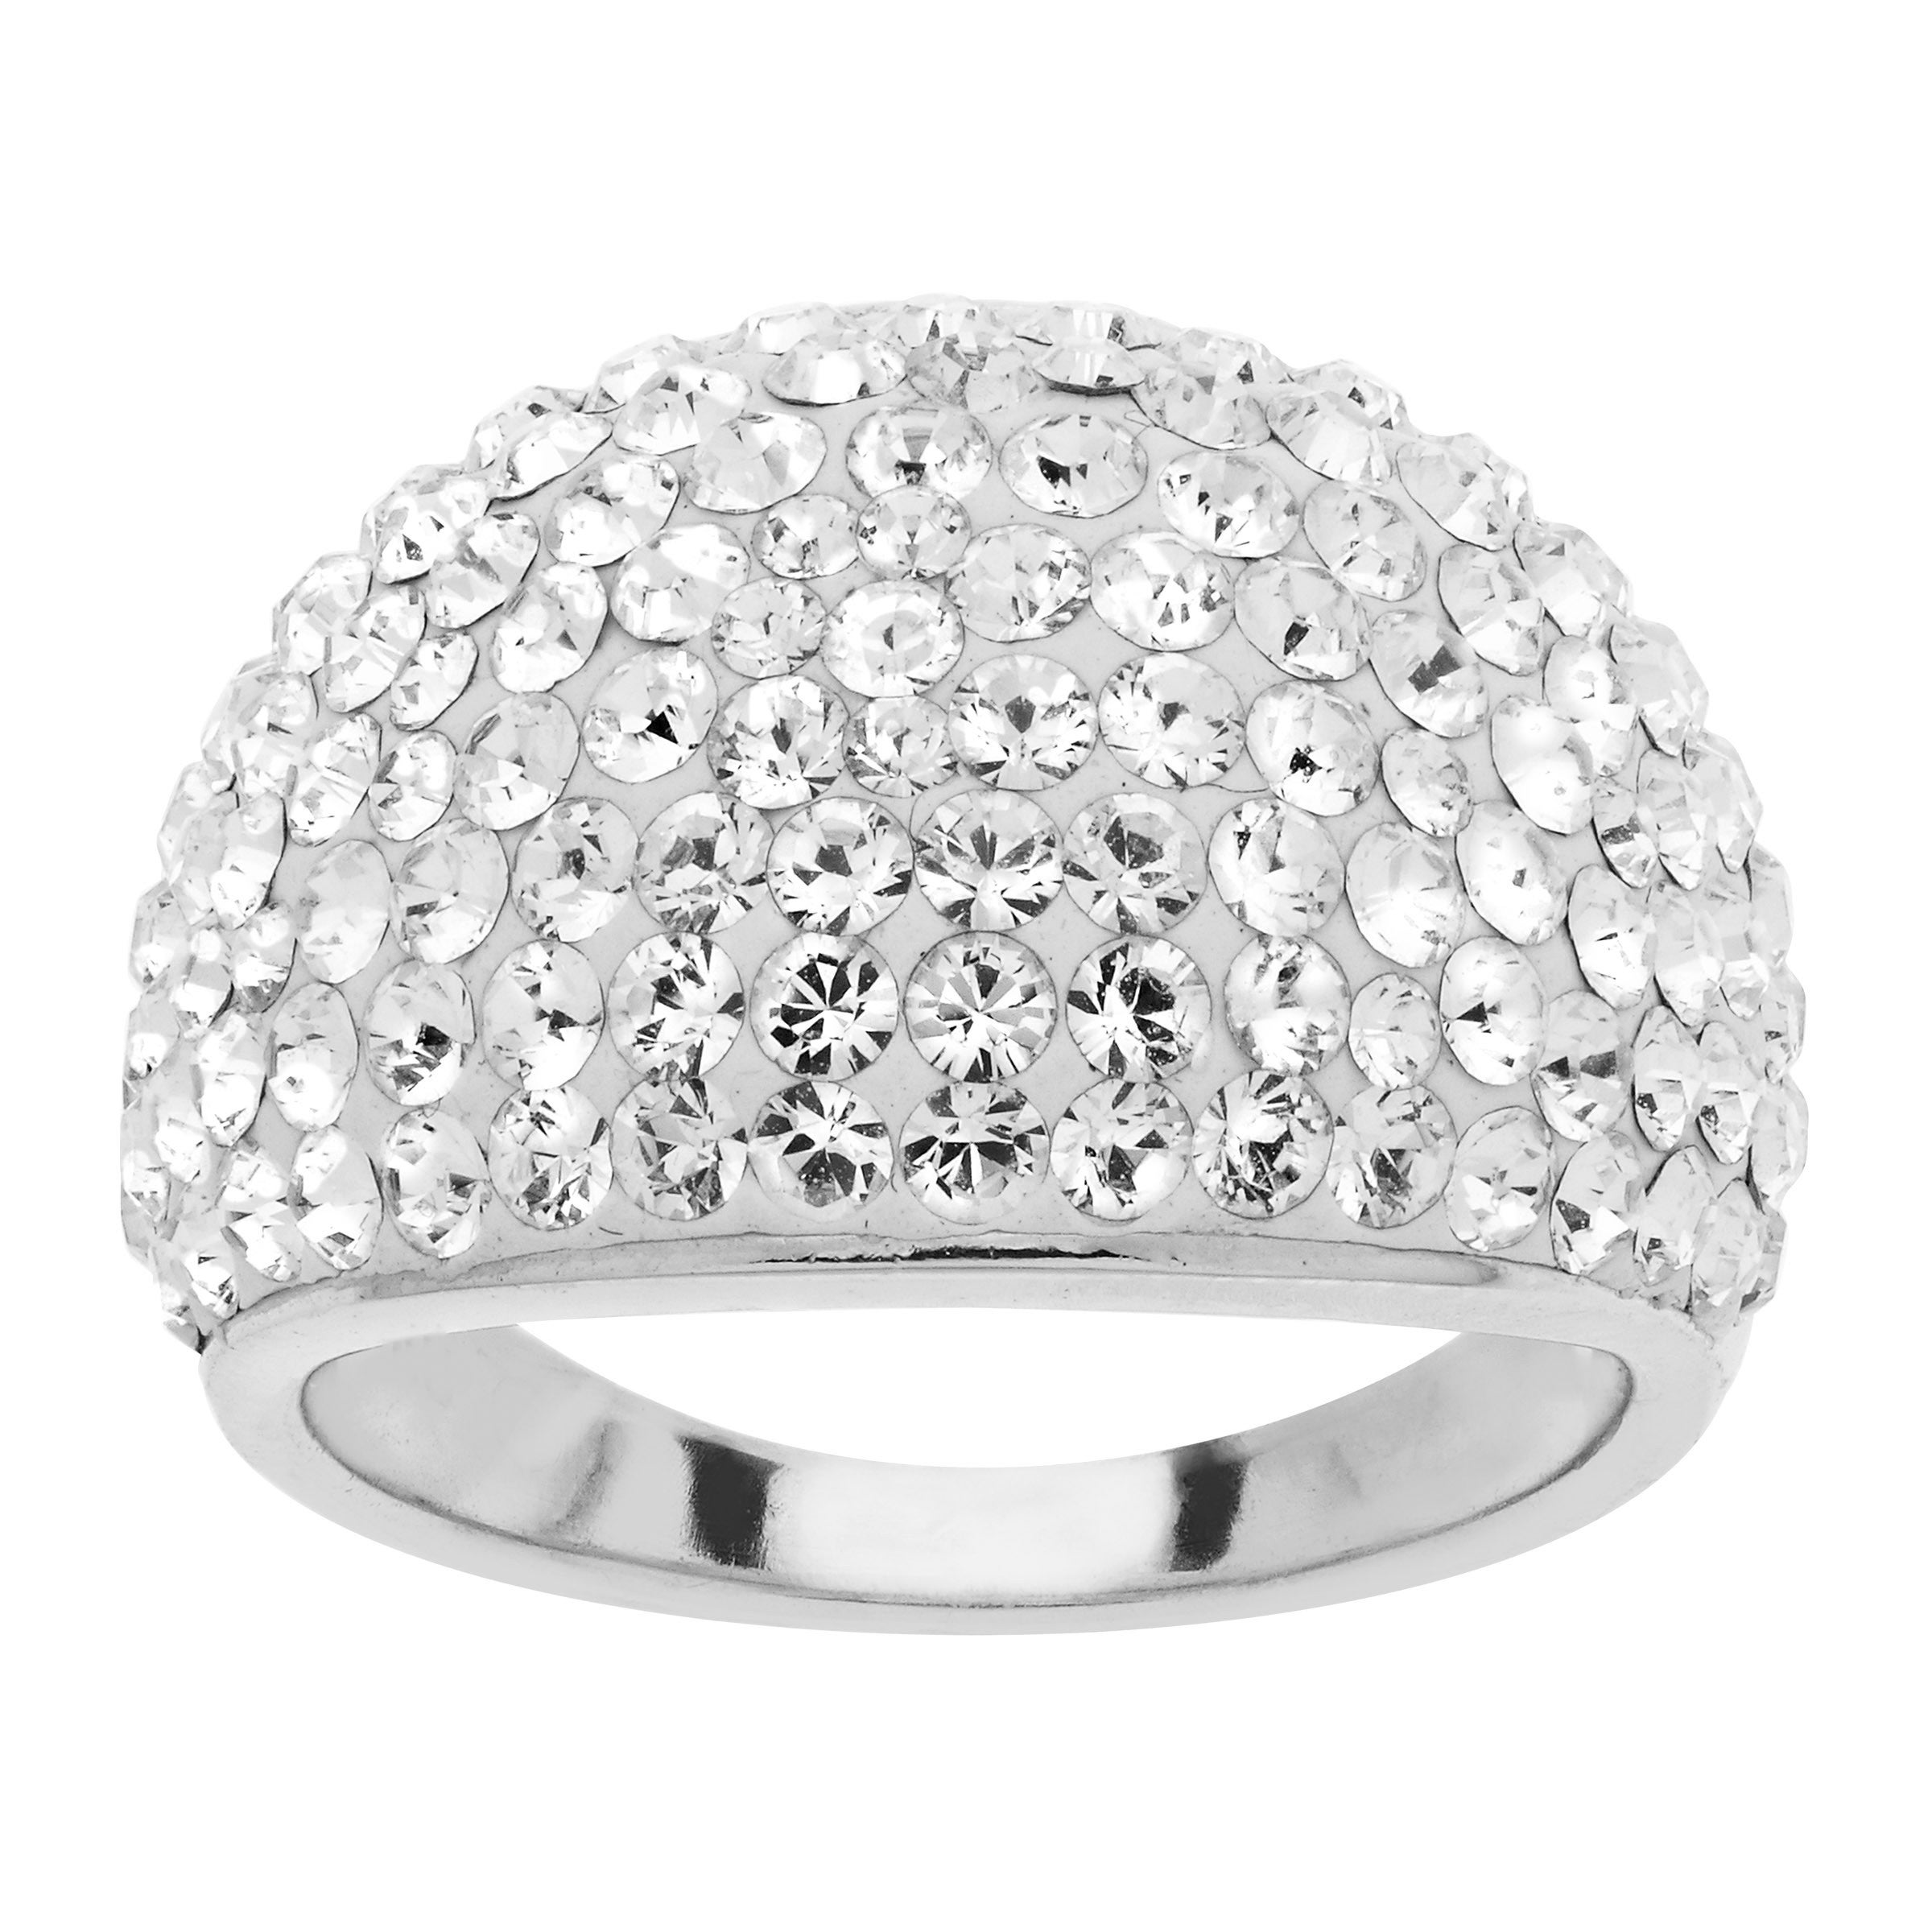 aea3a6d61 Shop Crystaluxe Dome Ring with Swarovski Crystals in Sterling Silver - Free  Shipping On Orders Over $45 - Overstock - 14154075